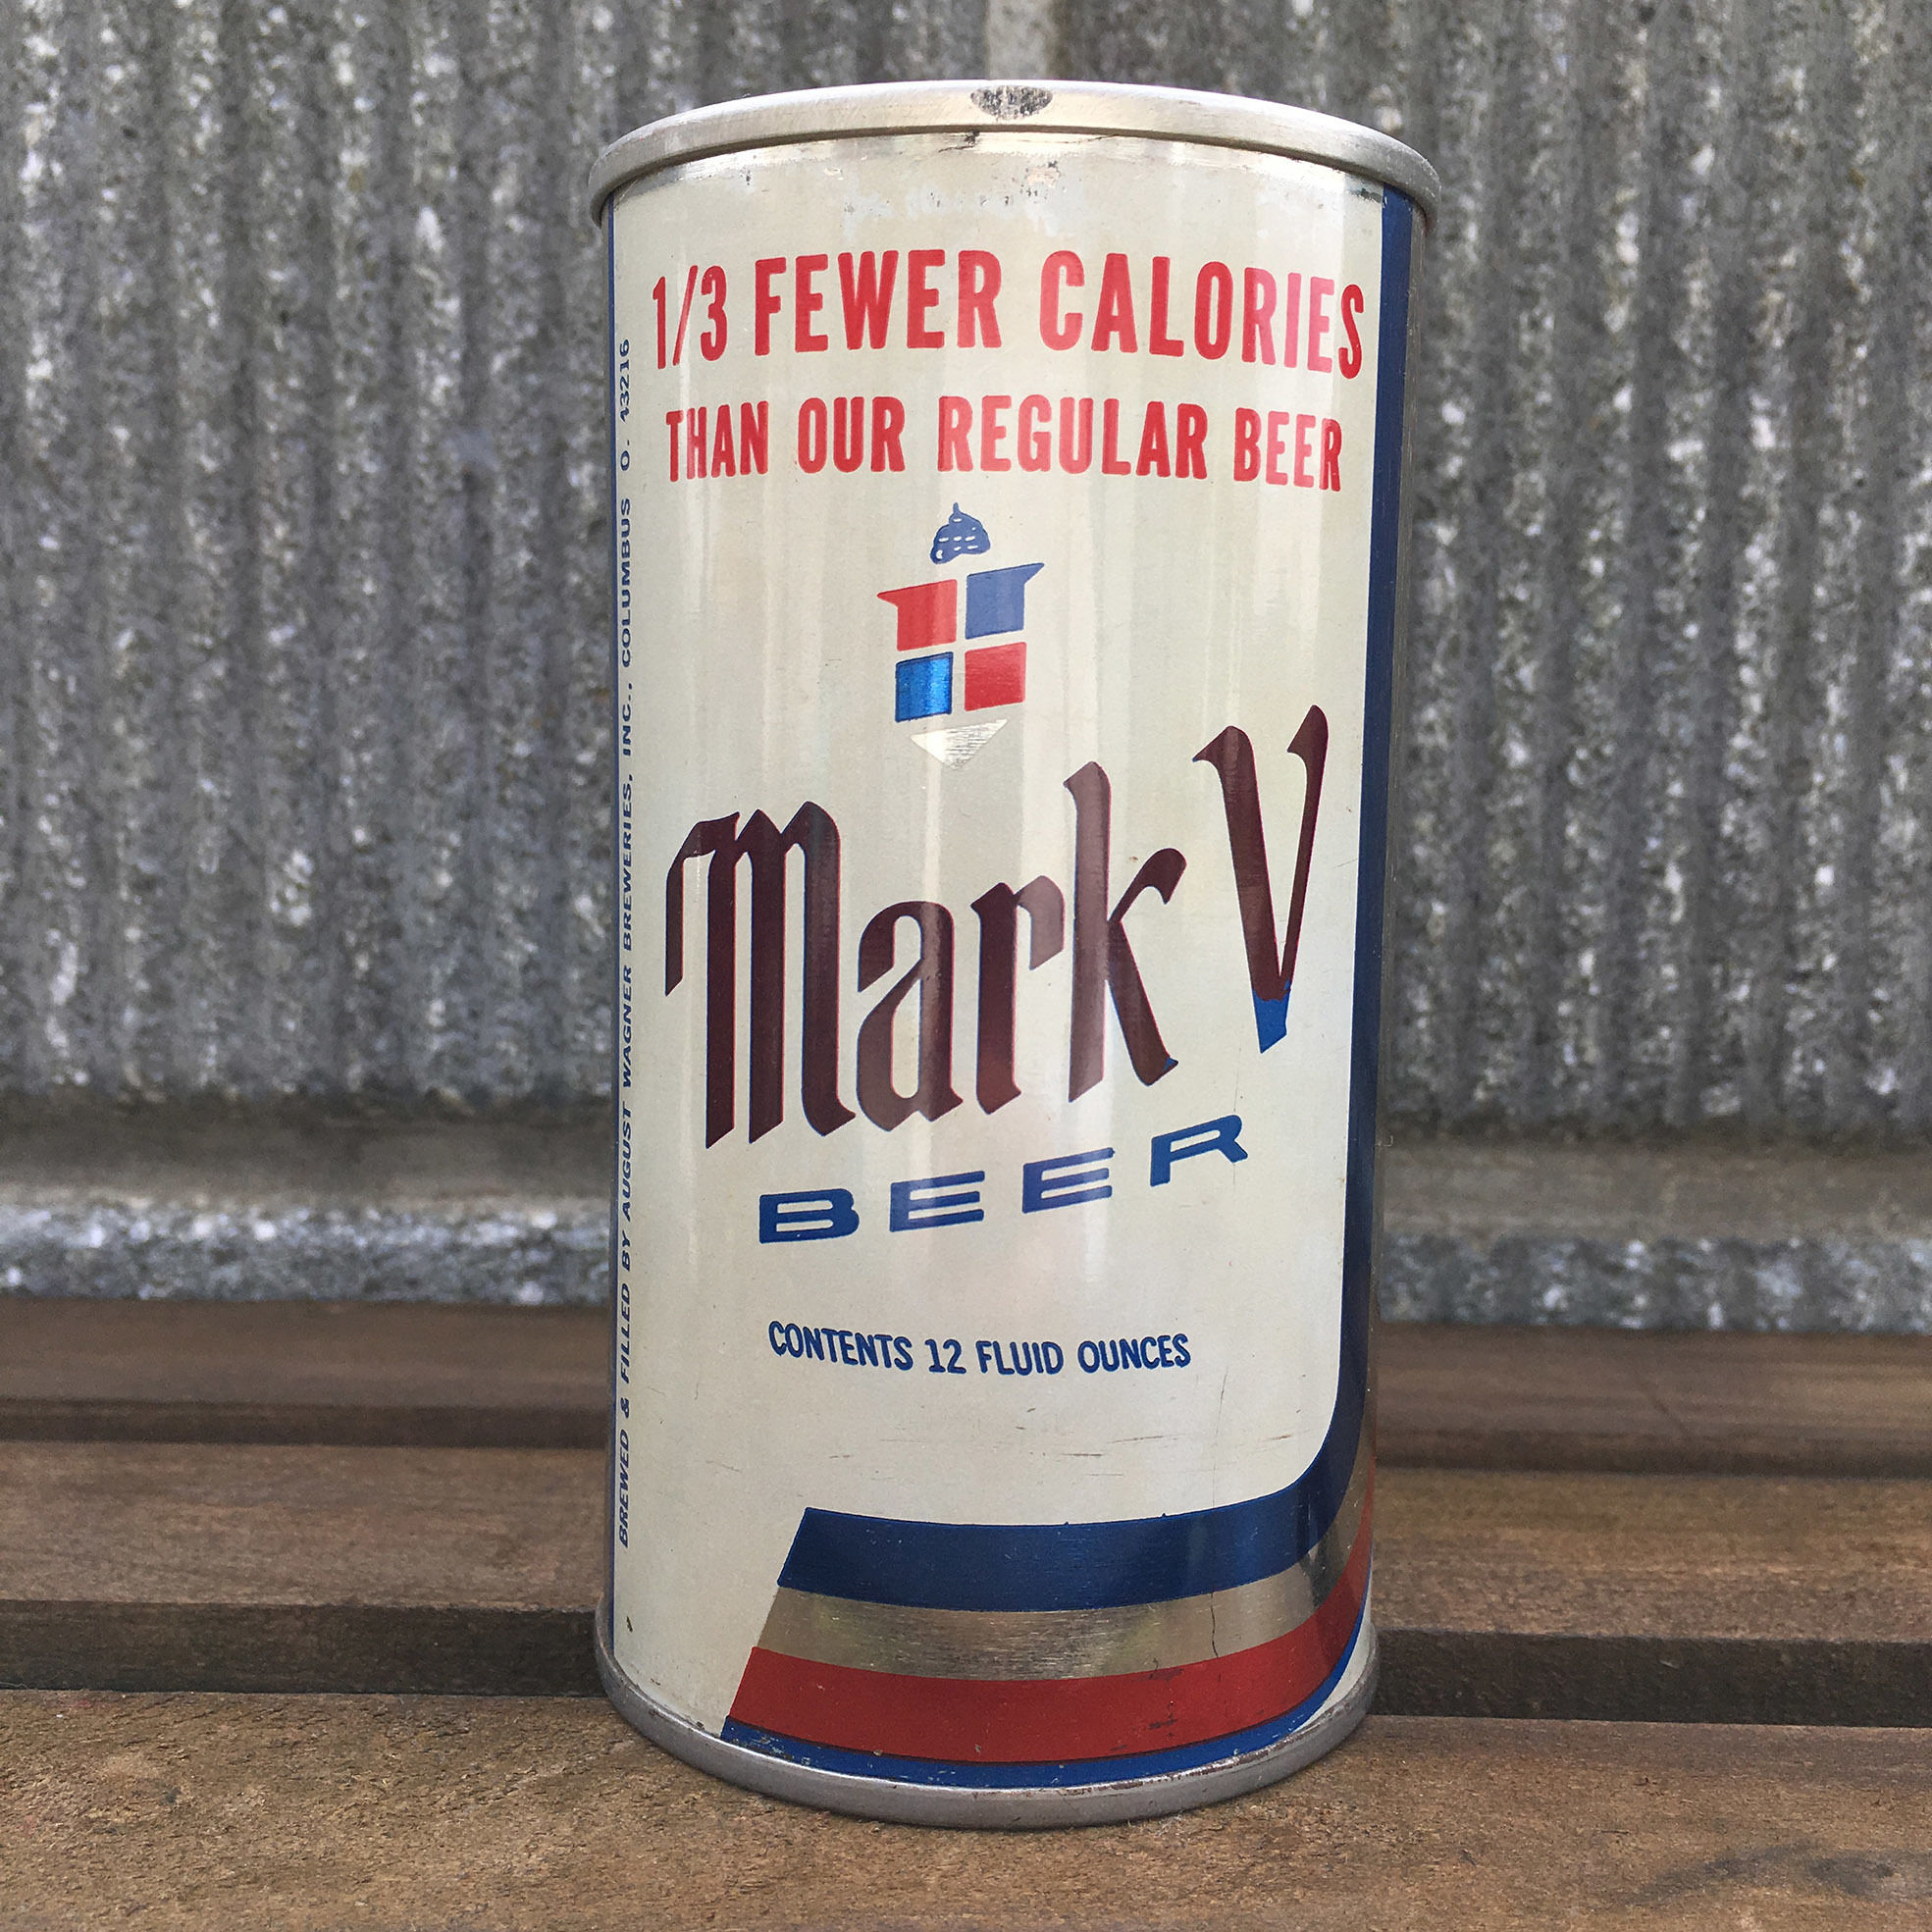 VINTAGE CAN Mark Ⅴ Beer Can/ヴィンテージ缶 マークファイブ ビアー缶/161011-4